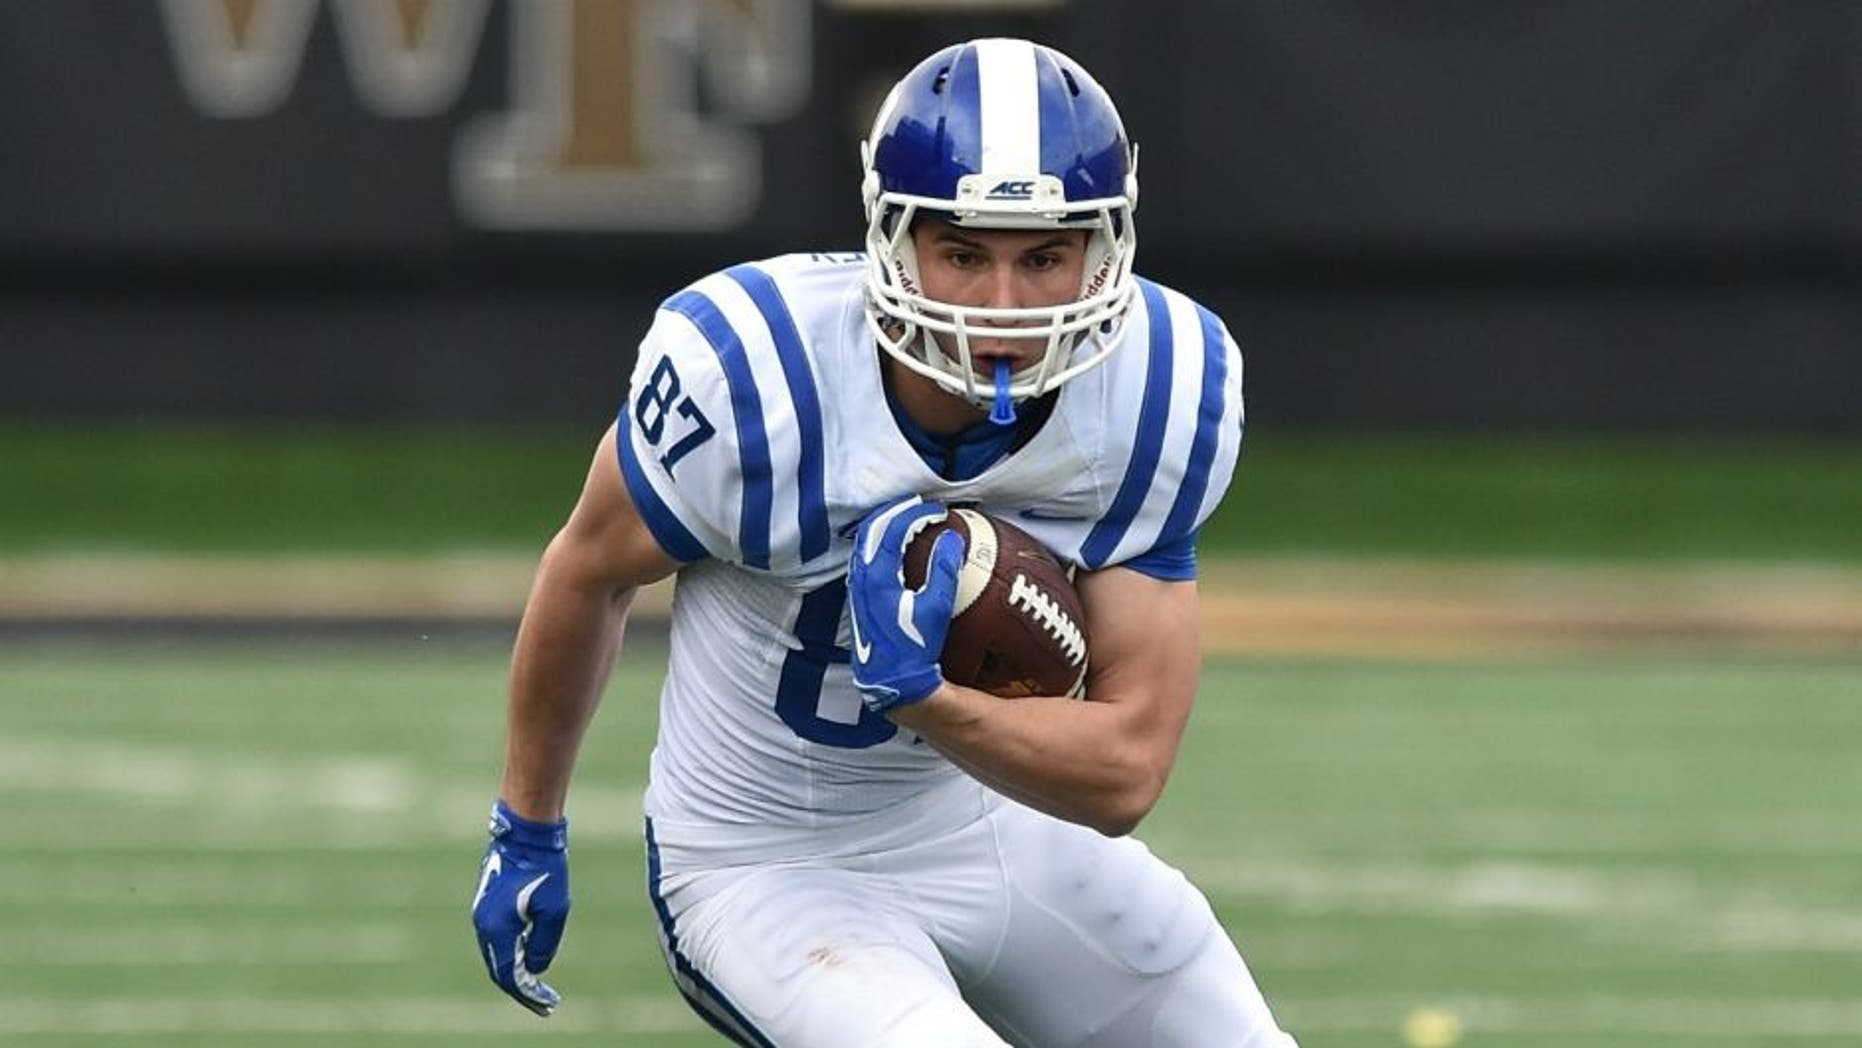 WINSTON-SALEM, NC - NOVEMBER 28: Max McCaffrey #87 of the Duke Blue Devils runs with the ball against the Wake Forest Demon Deacons at BB&T Field on November 28, 2015 in Winston-Salem, North Carolina. Duke defeated Wake Forest 27-21. (Photo by Lance King/Getty Images)